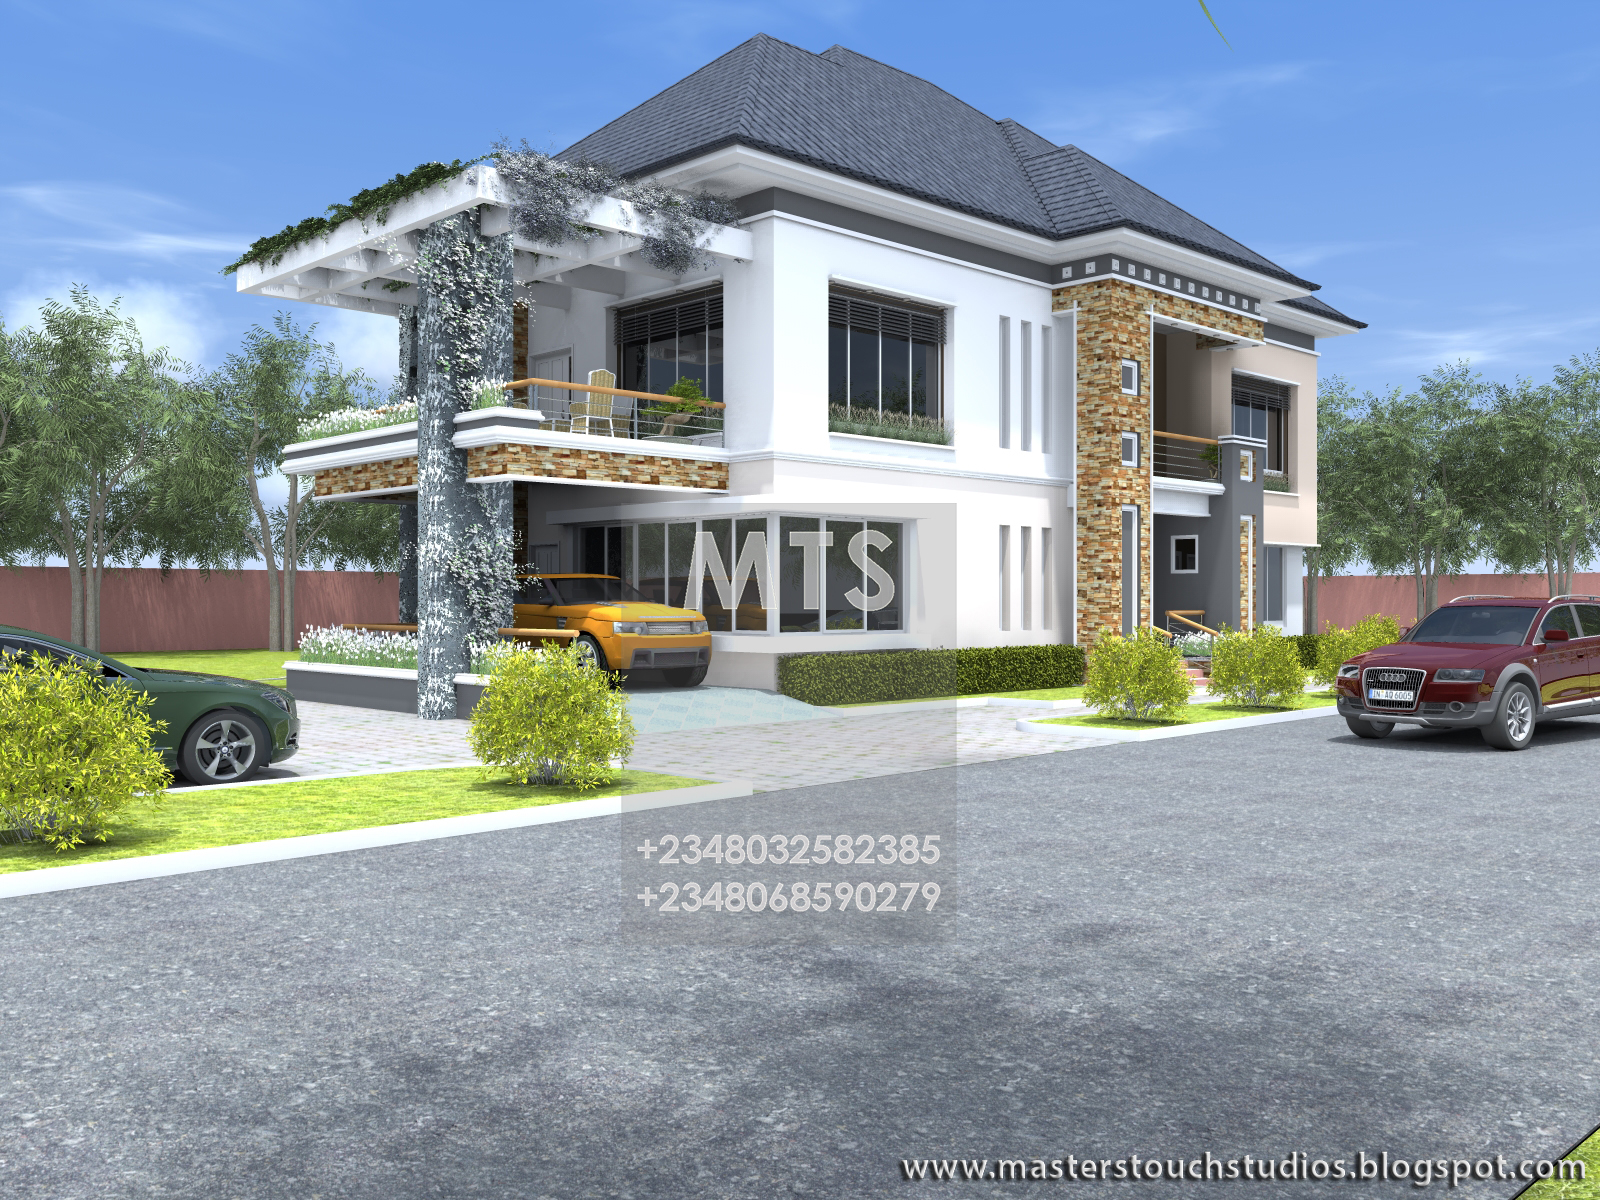 Engr eddy 6 bedroom duplex residential homes and public for 4 bedroom house designs in nigeria